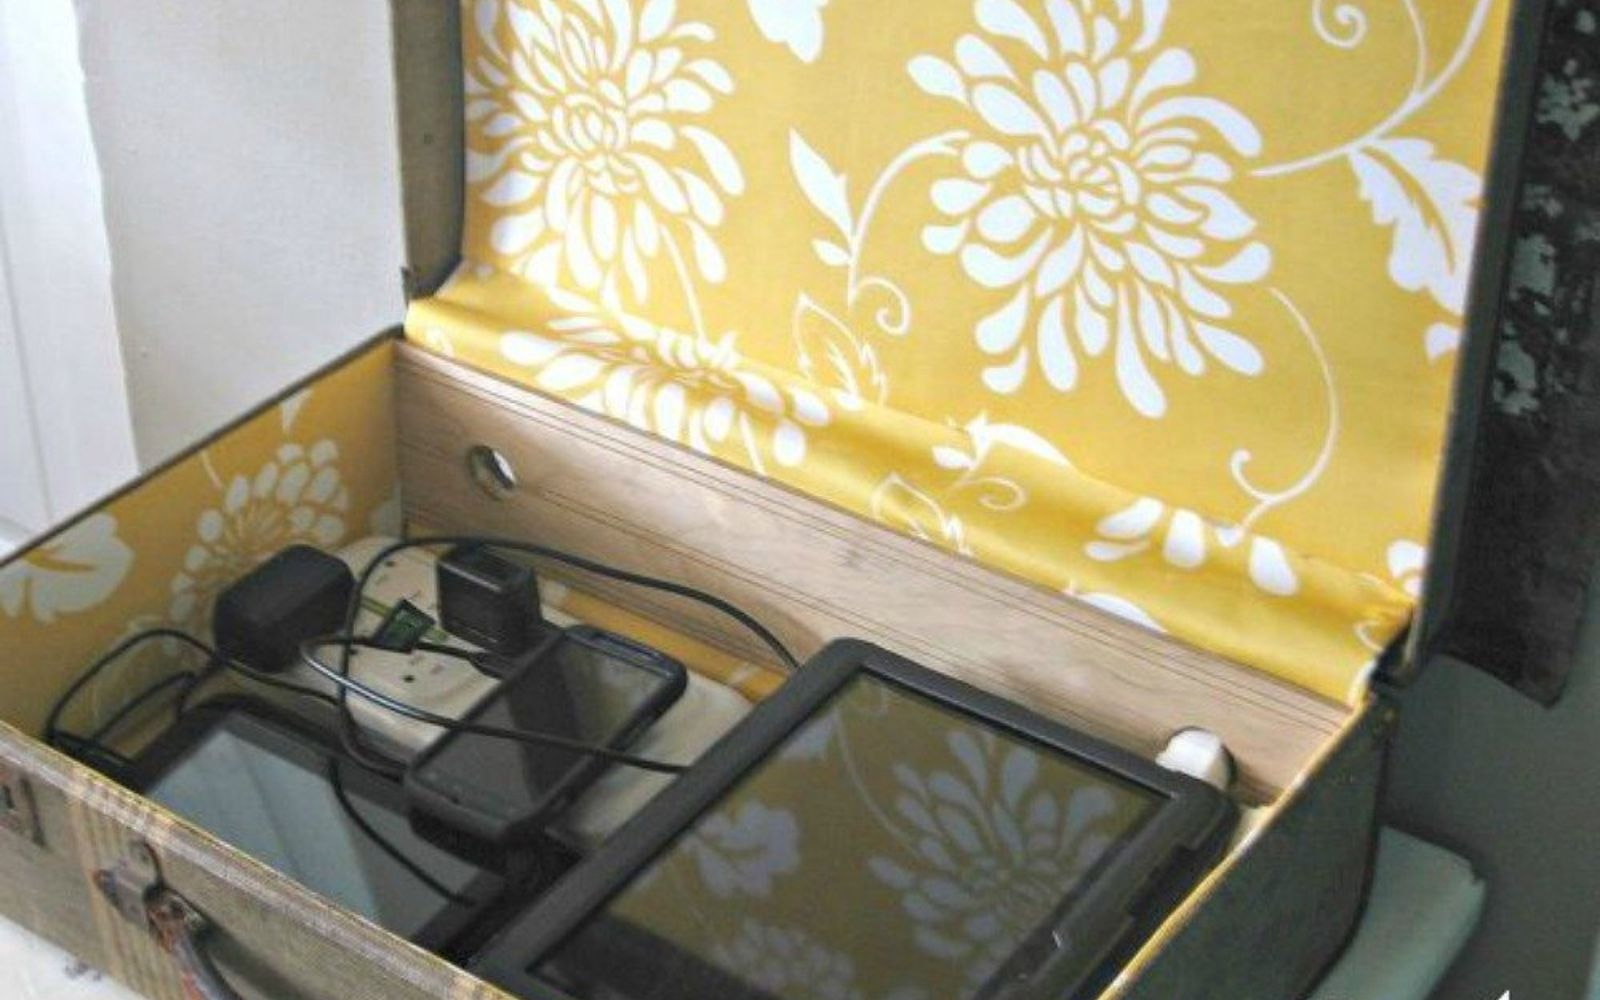 s don t throw out your old suitcase before you see these 15 clever ideas, Repurpose it into a vintage charging station